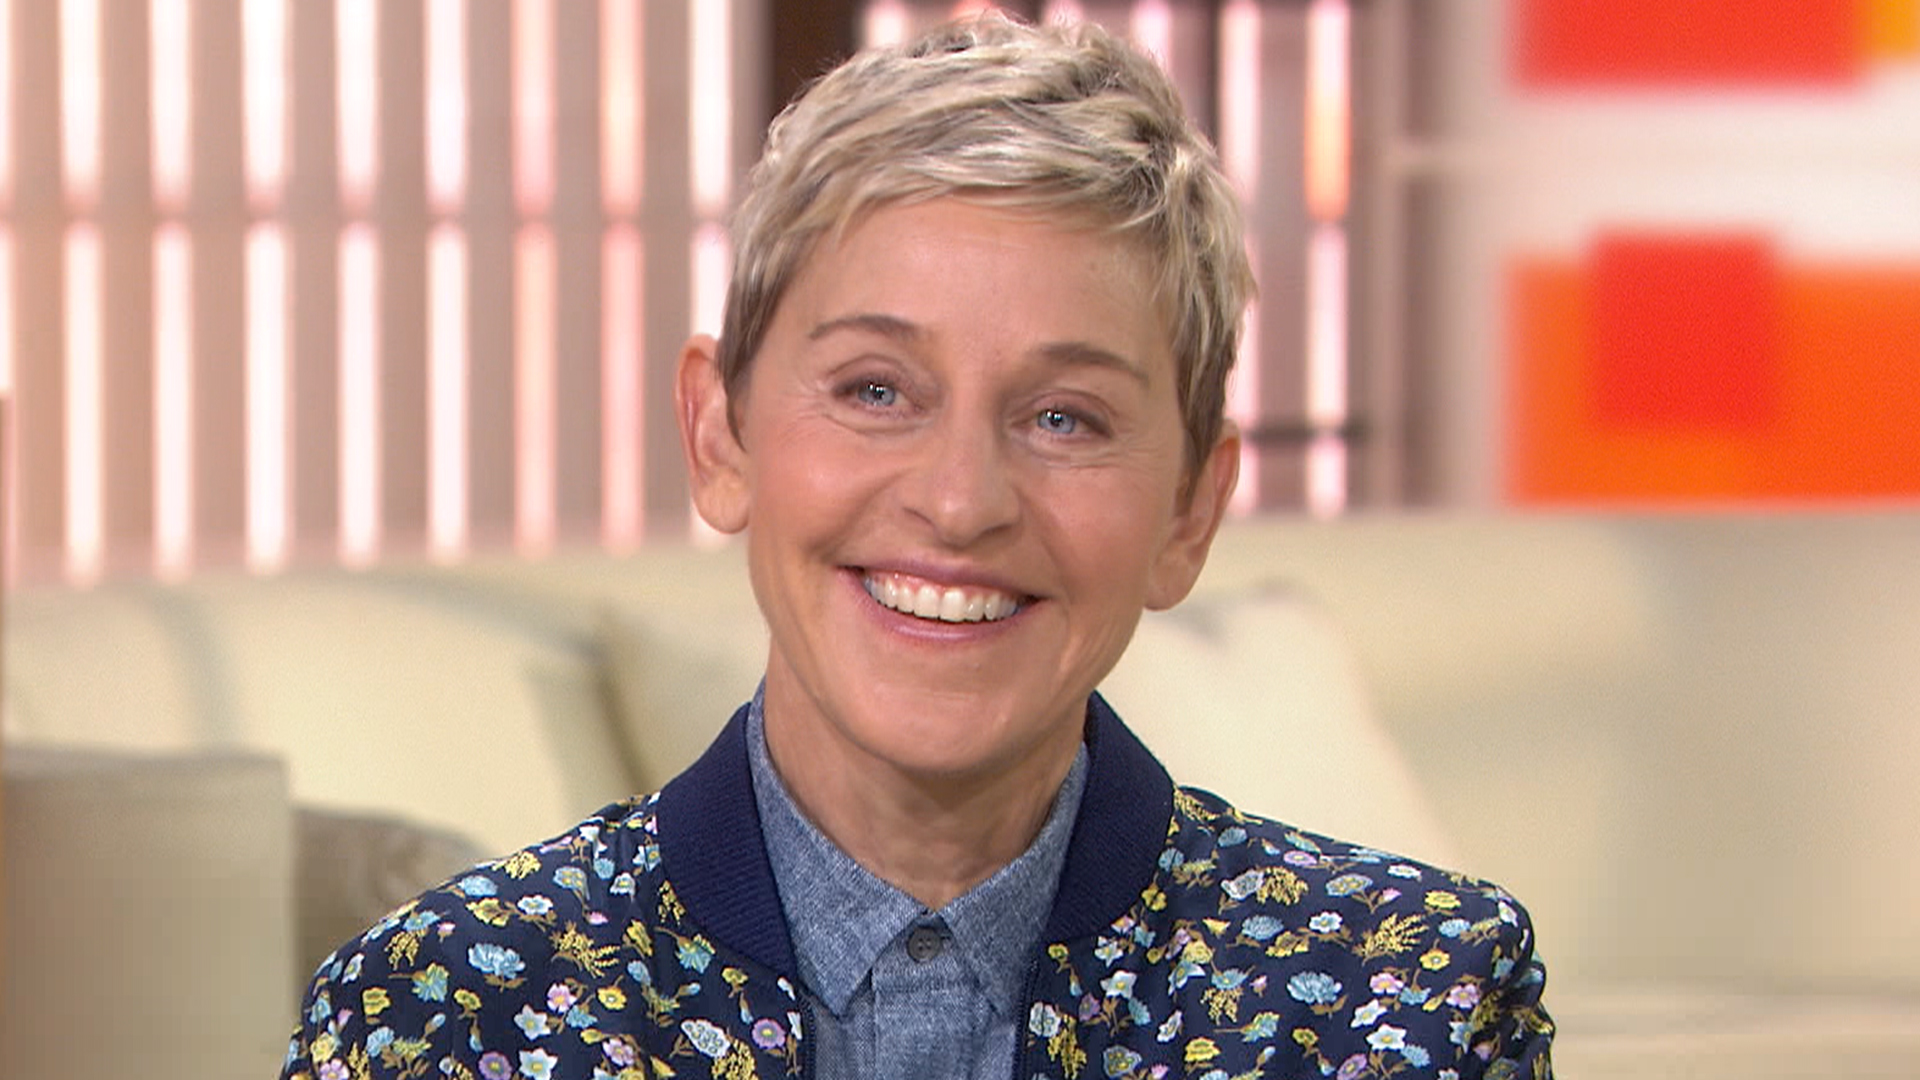 Ellen DeGeneres opens up about new book Home on TODAY